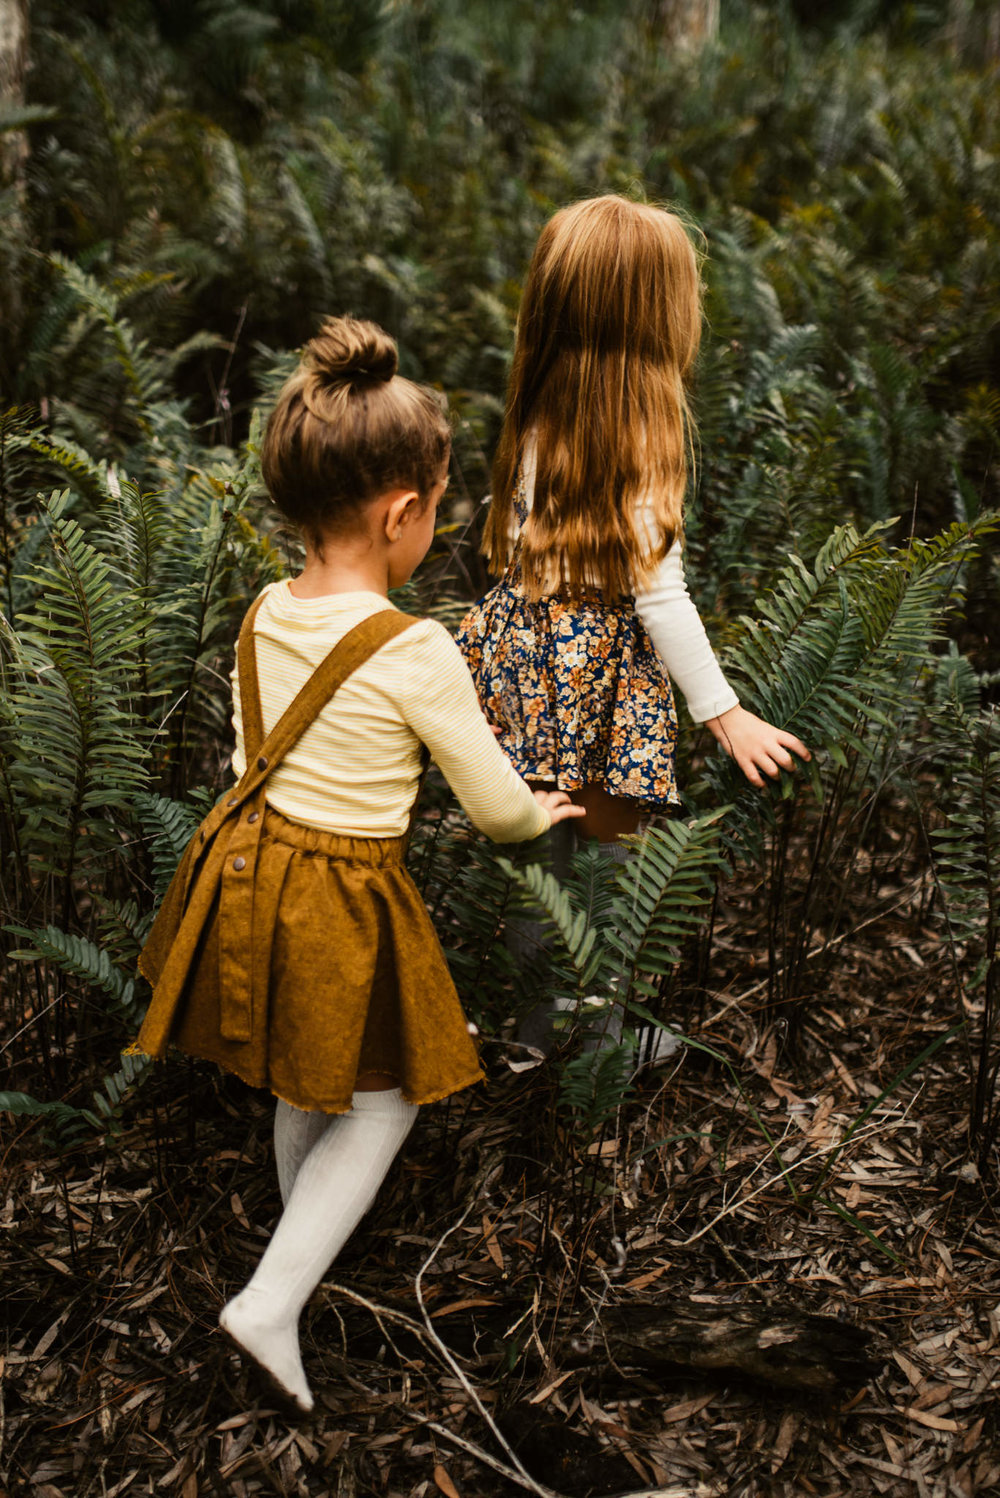 twyla jones photography - treasure coast florida - childrens adventure clothing commercial shoot--13.jpg